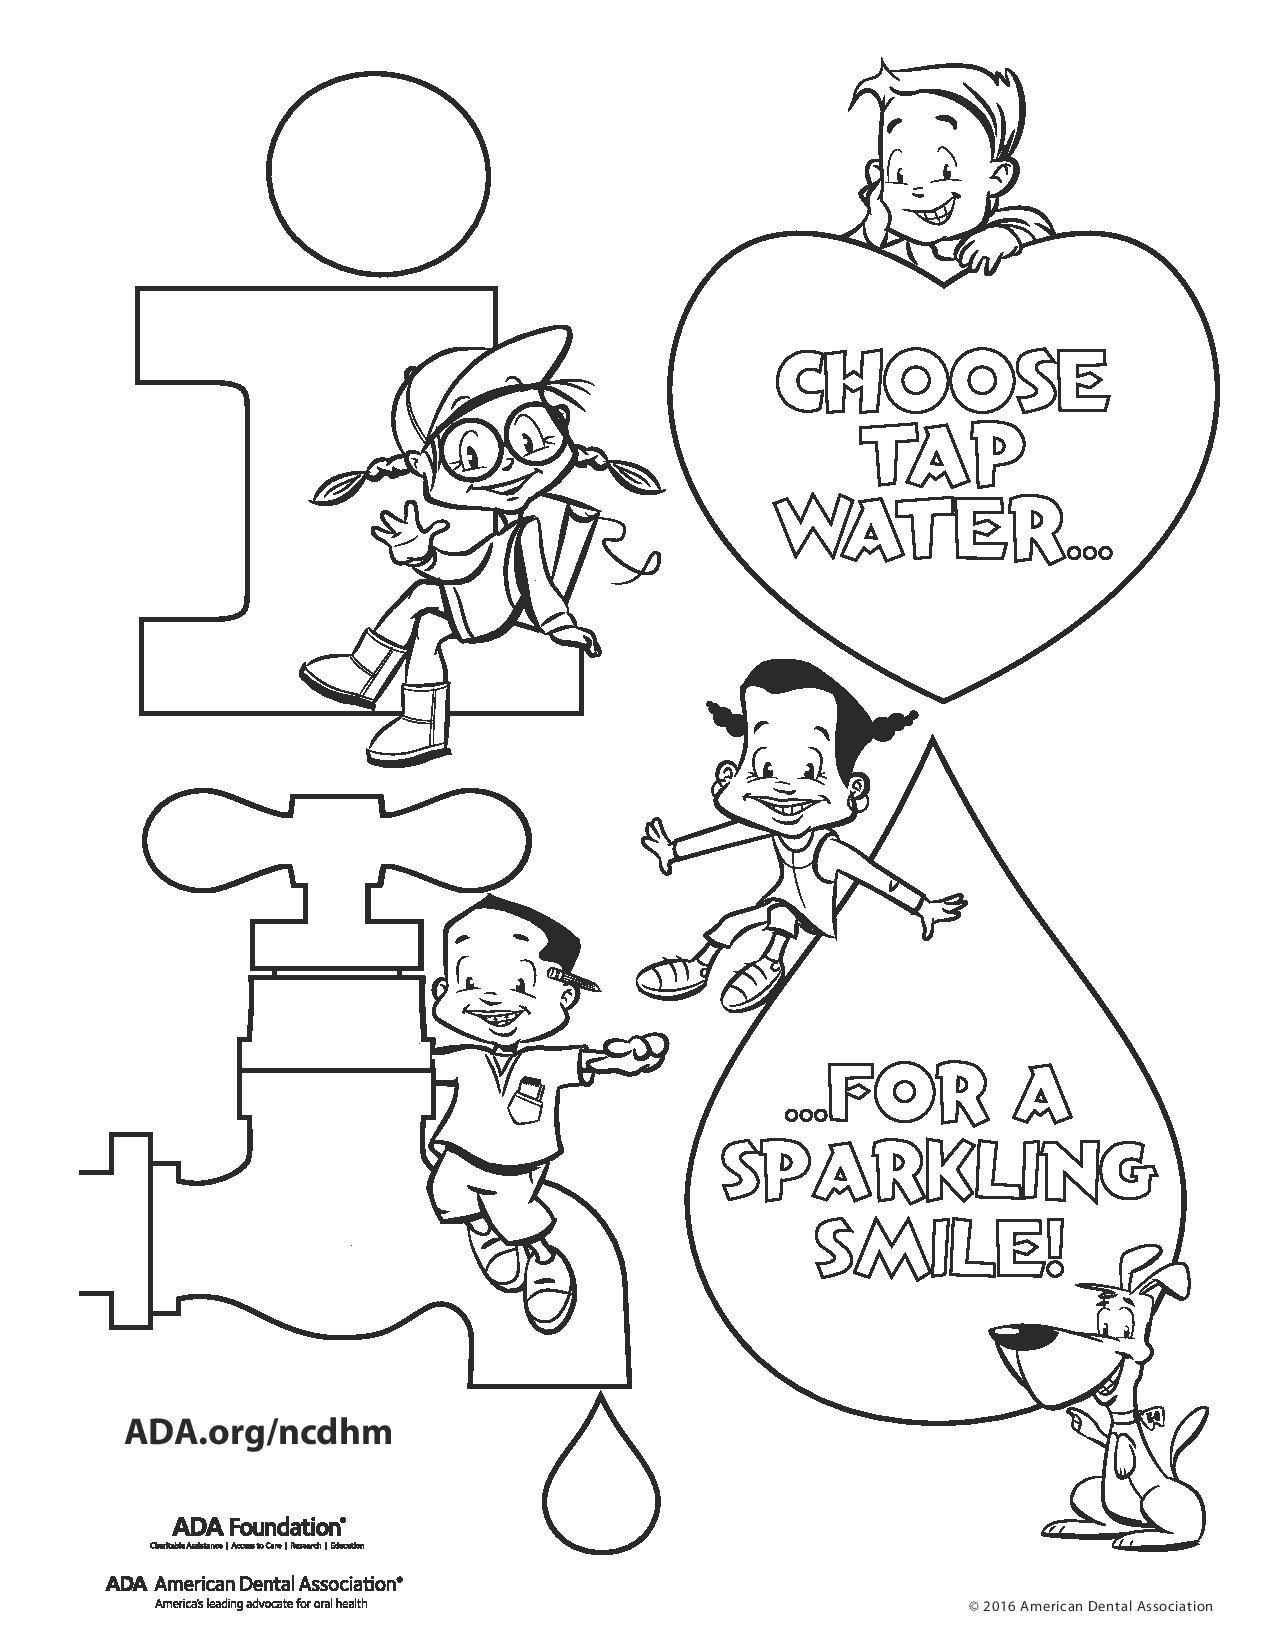 Childrens dental coloring pages - 2017 National Children S Dental Health Month Download Image Childrens Health Coloring Pages